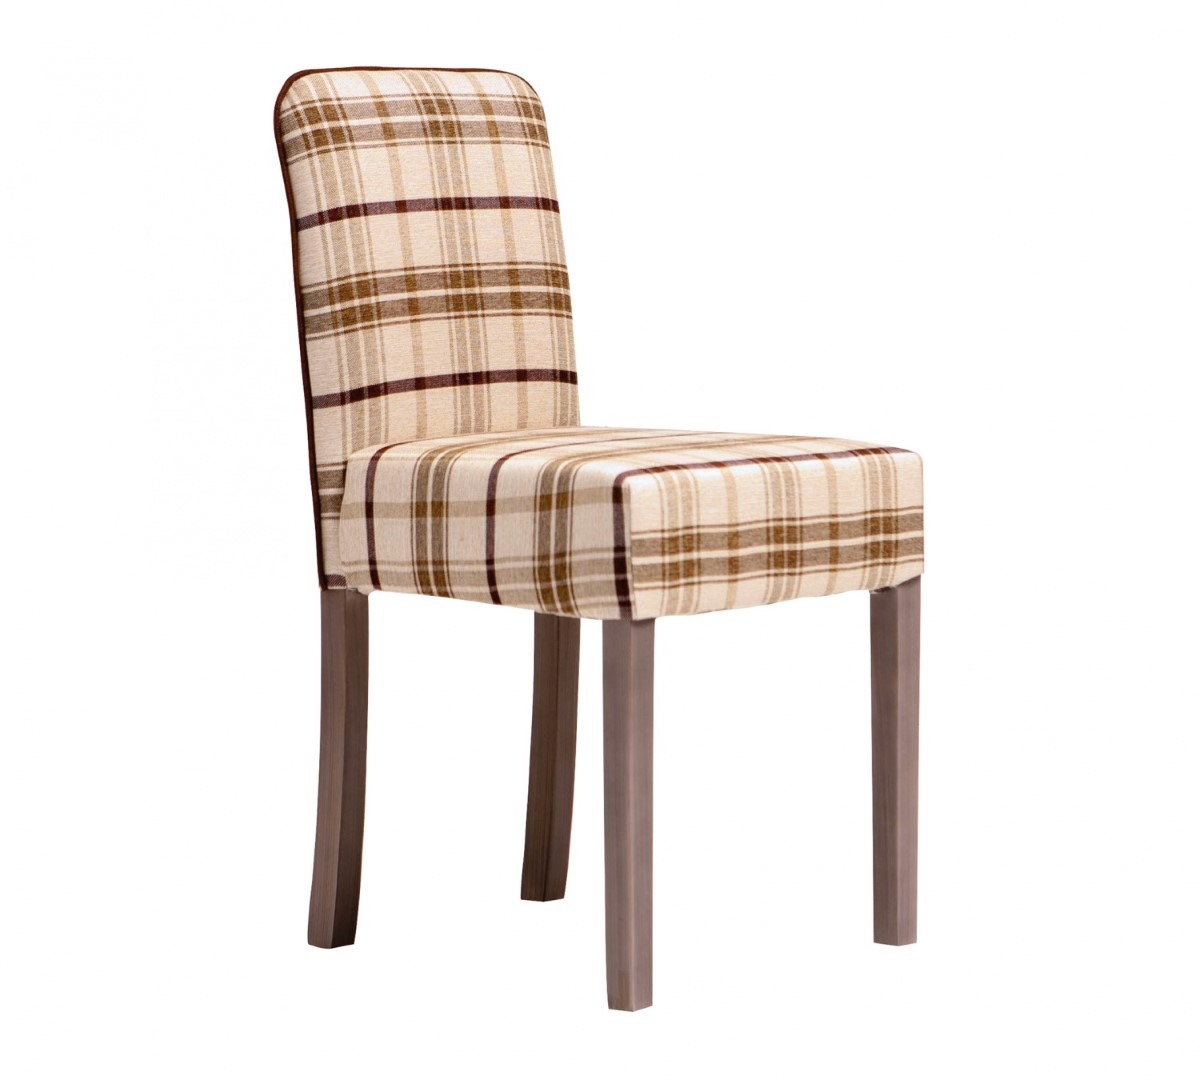 Plaid-Chair1